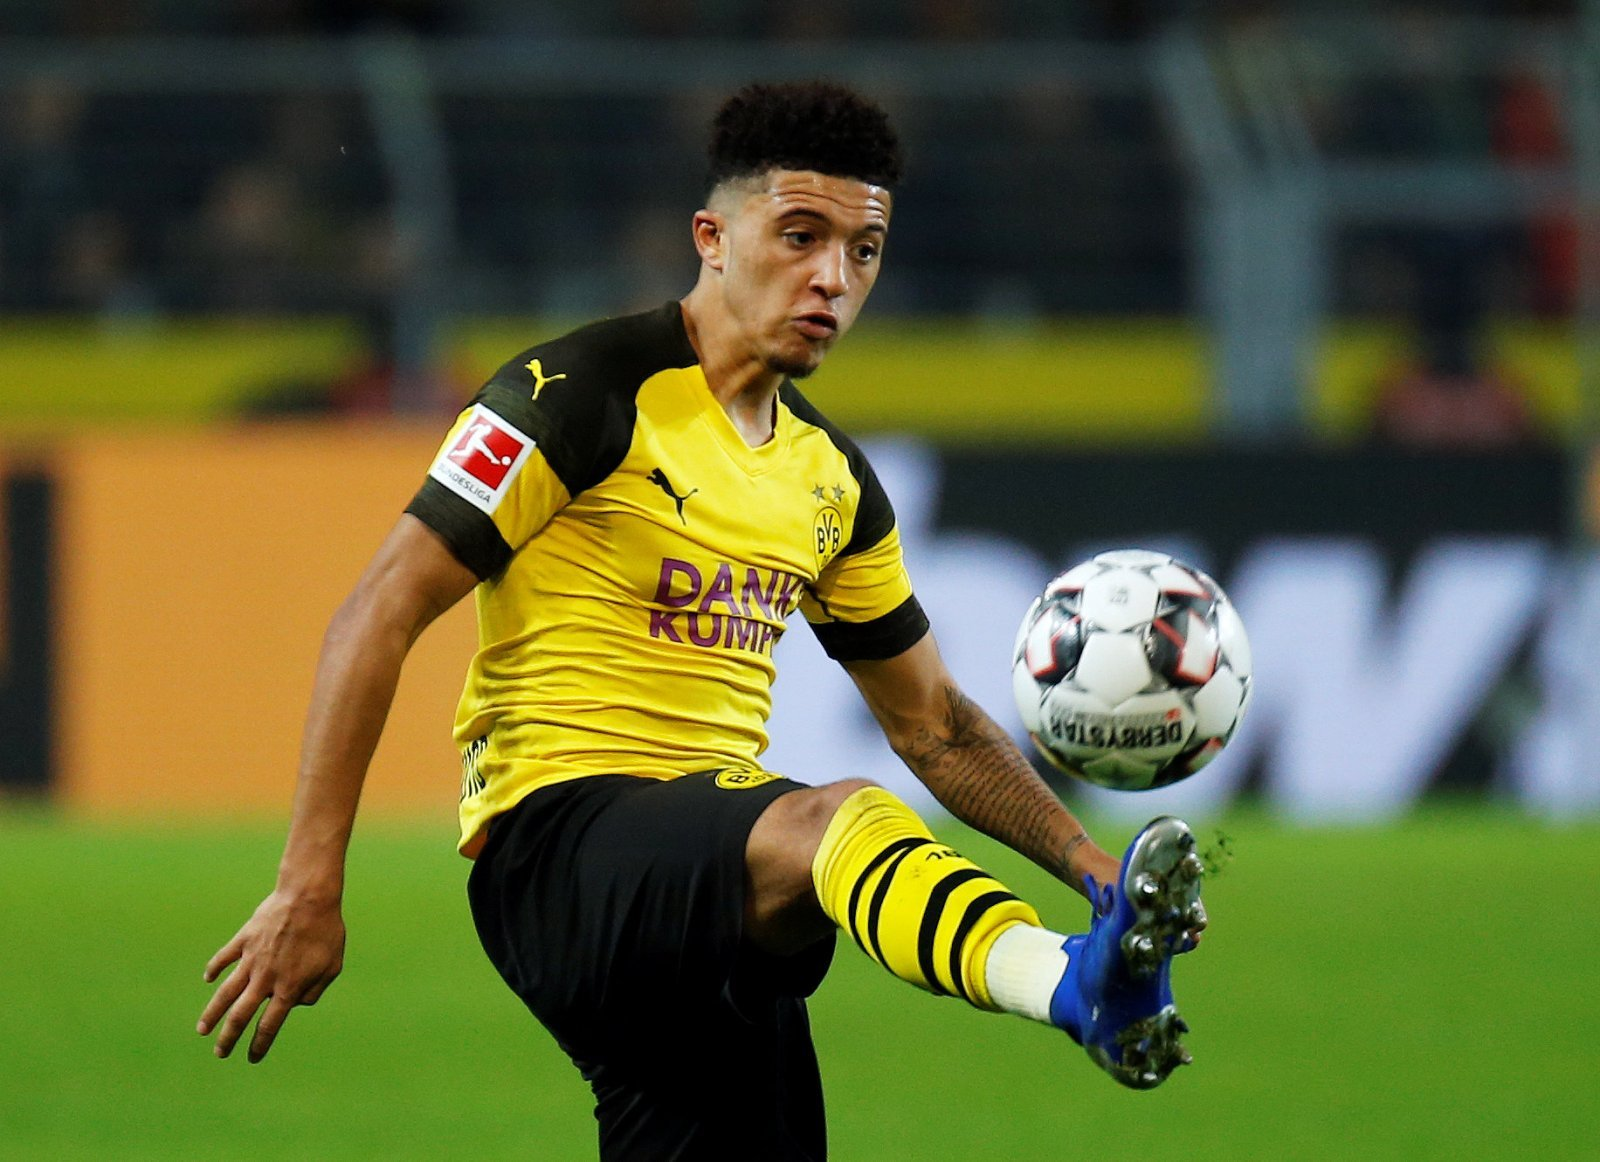 Jadon Sancho isn't the be all and end all for Manchester United